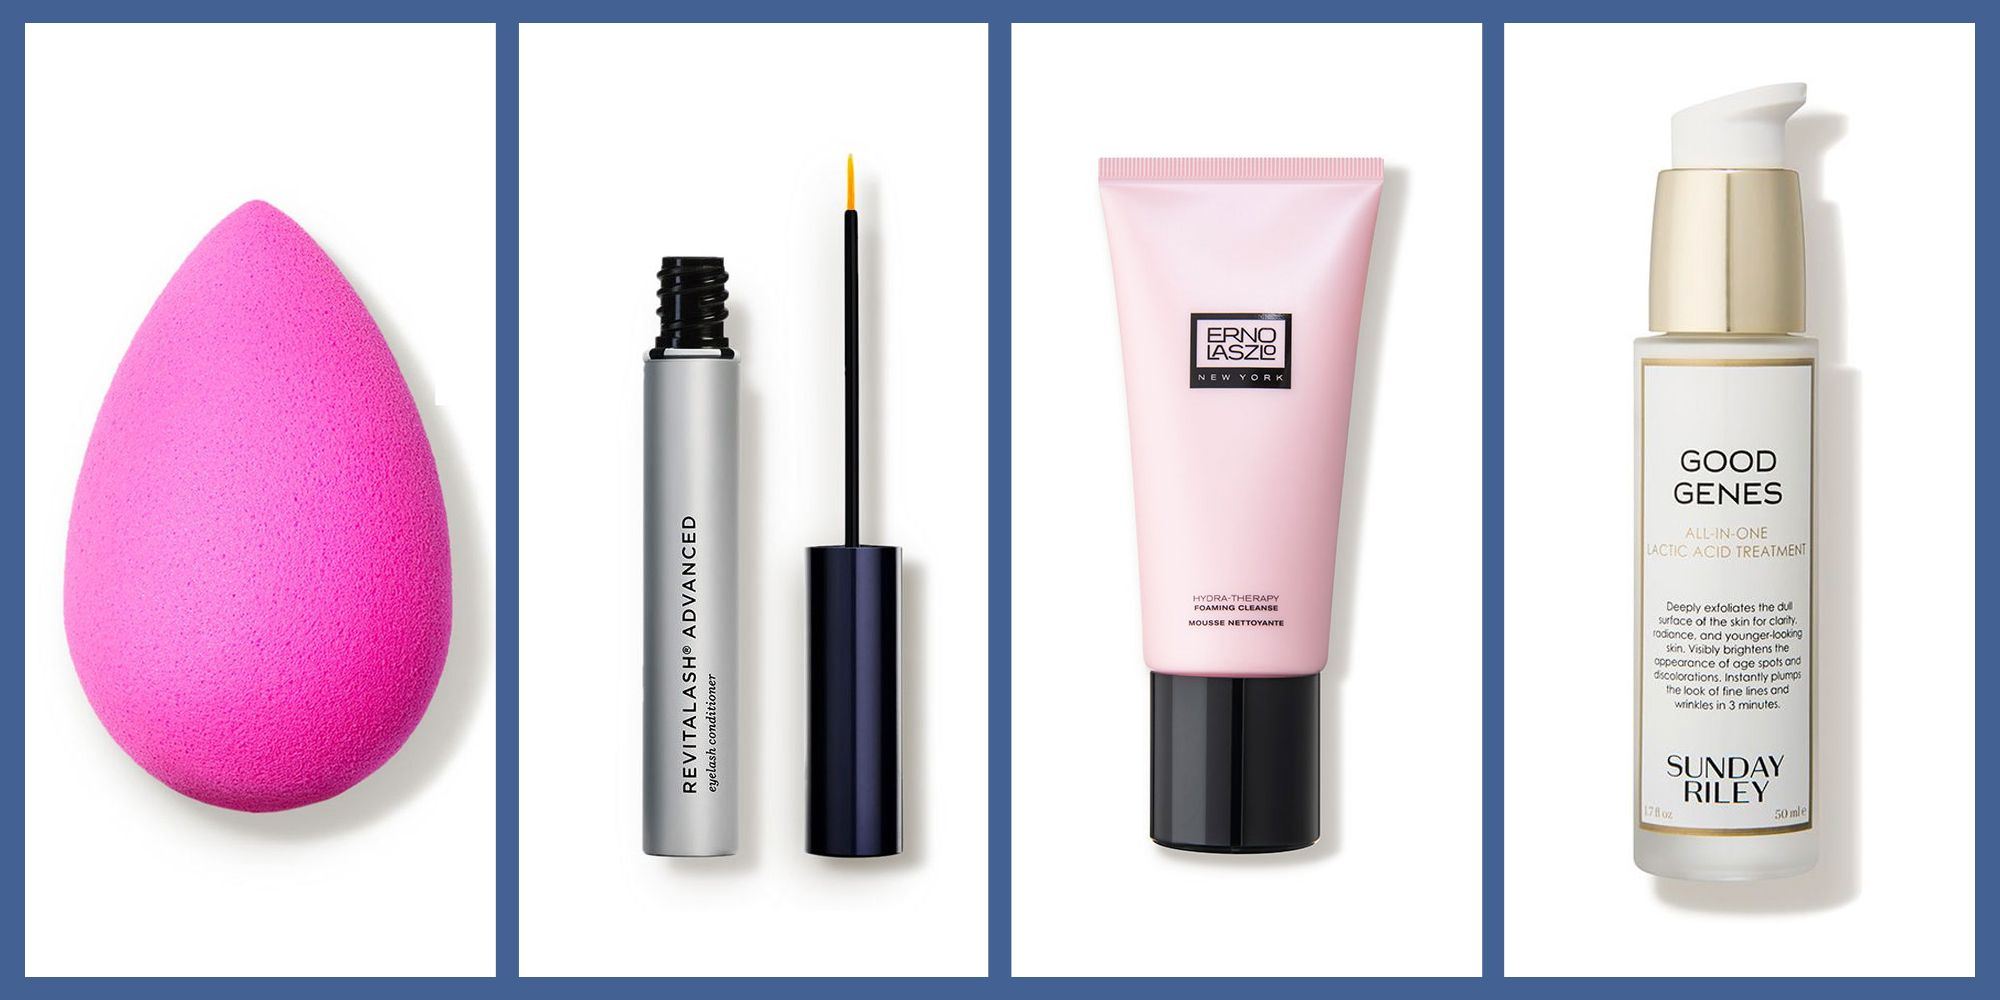 The Best Beauty Products From the Dermstore Anniversary Sale